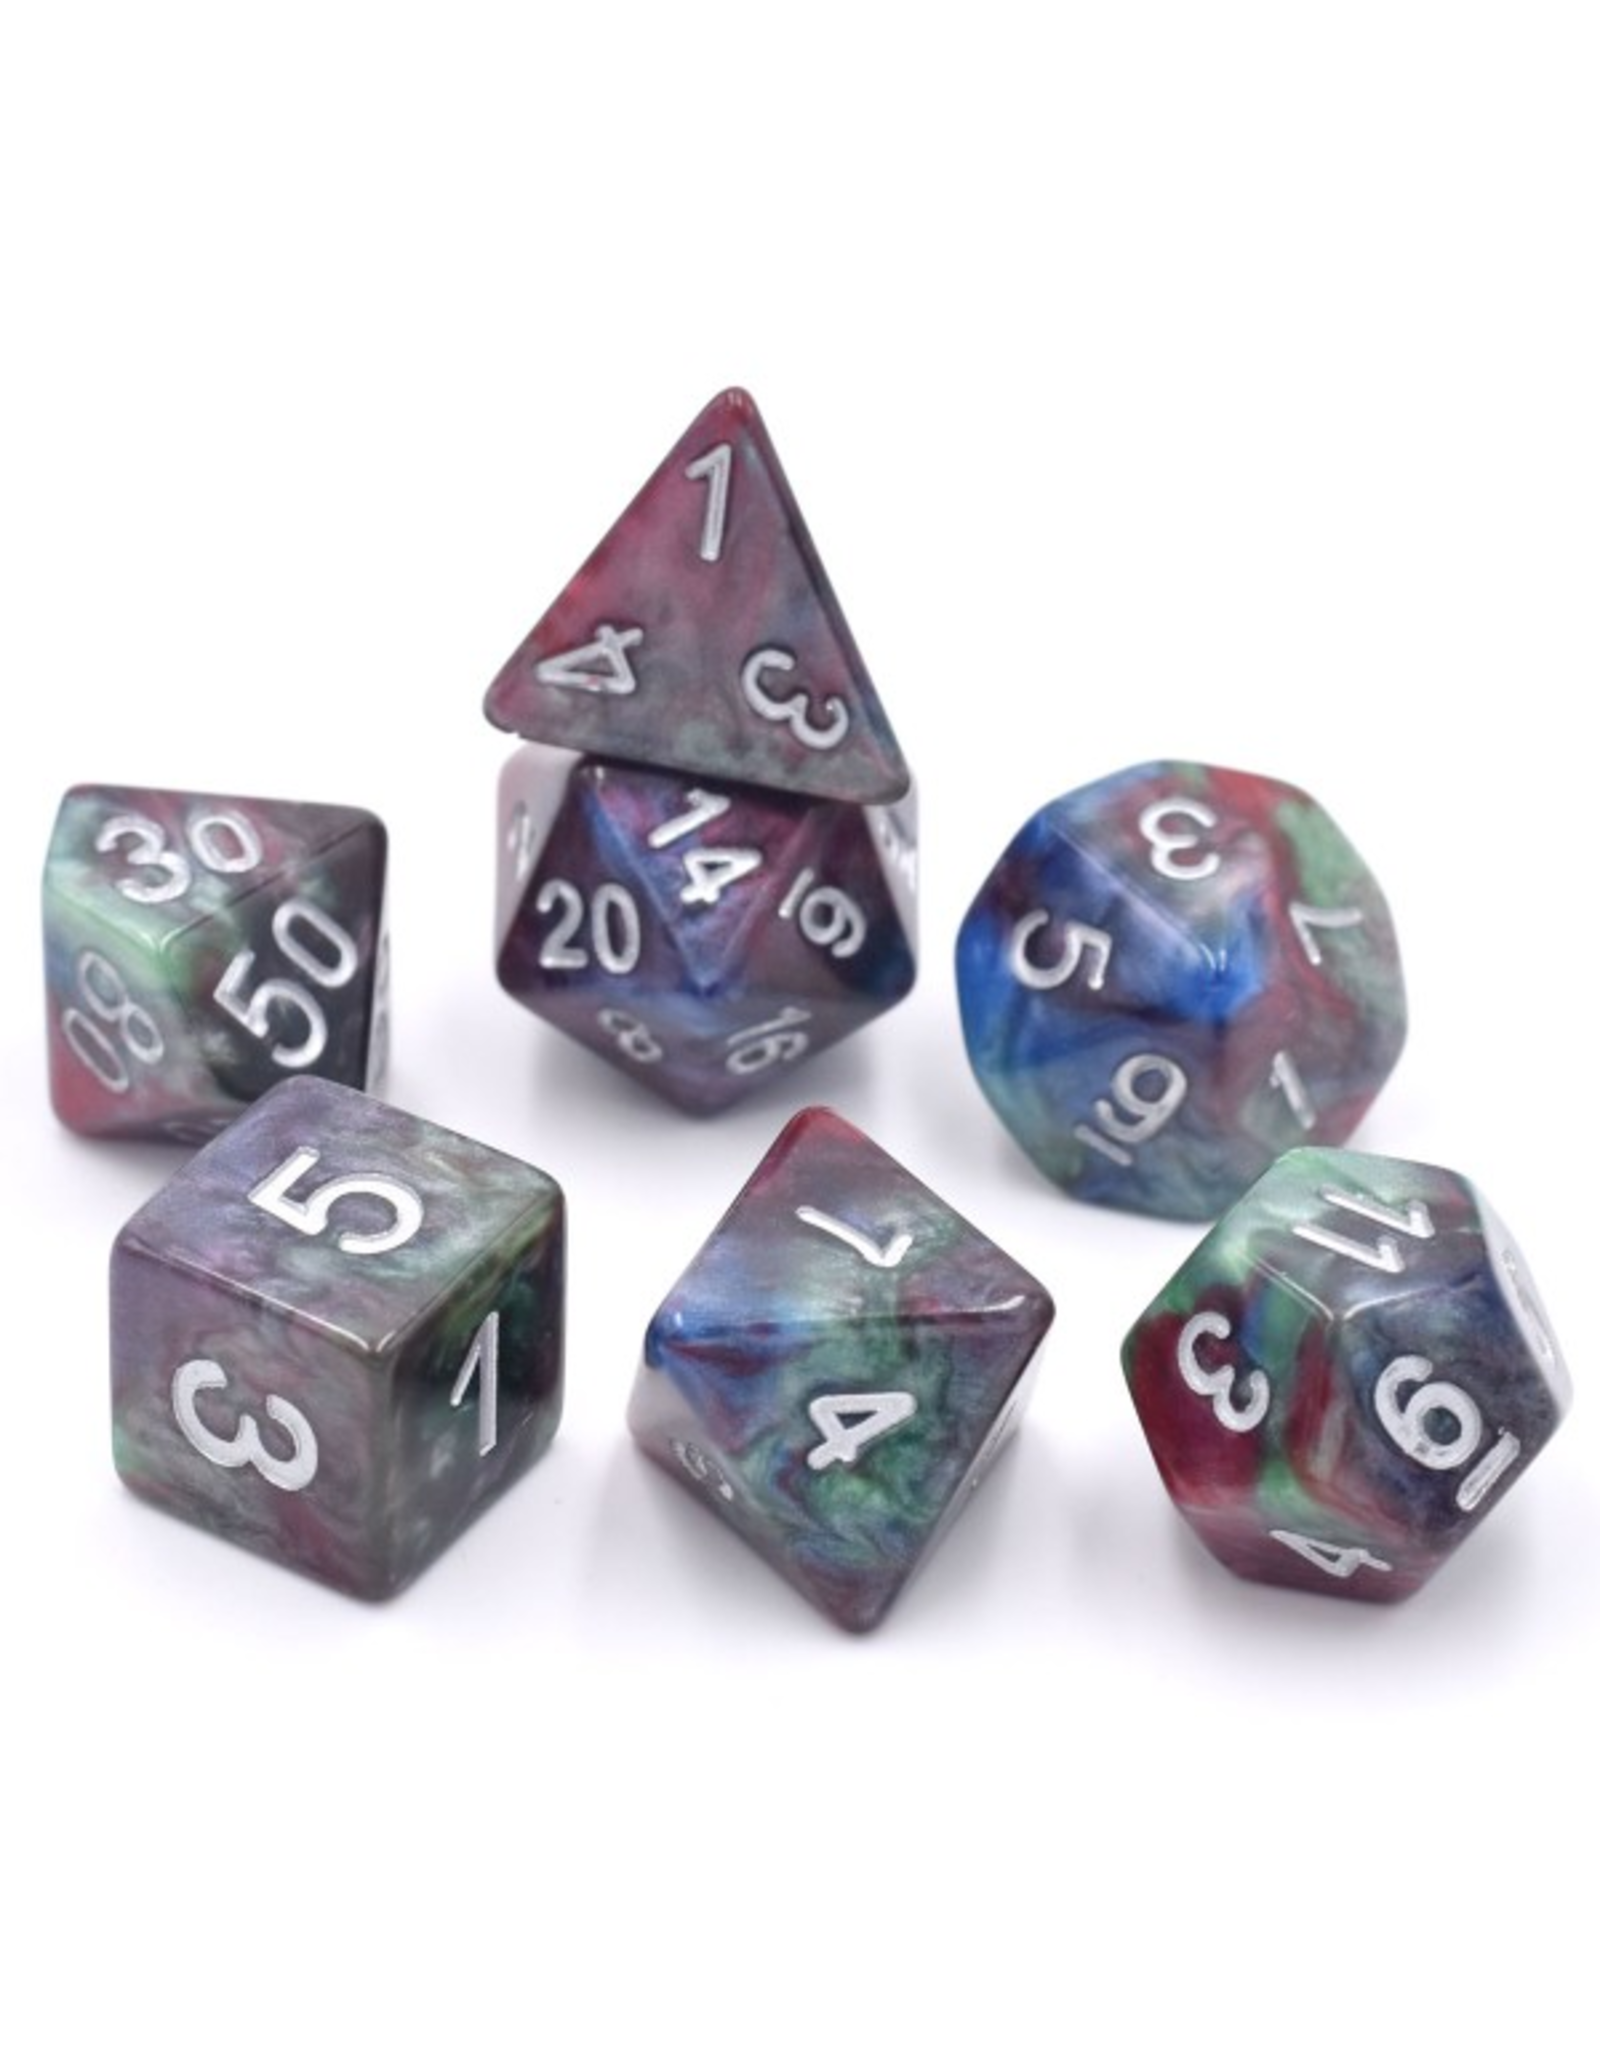 HD Dice Dice: 7-Set Marble Red-Green-Blue with Silver Numbers (HD)